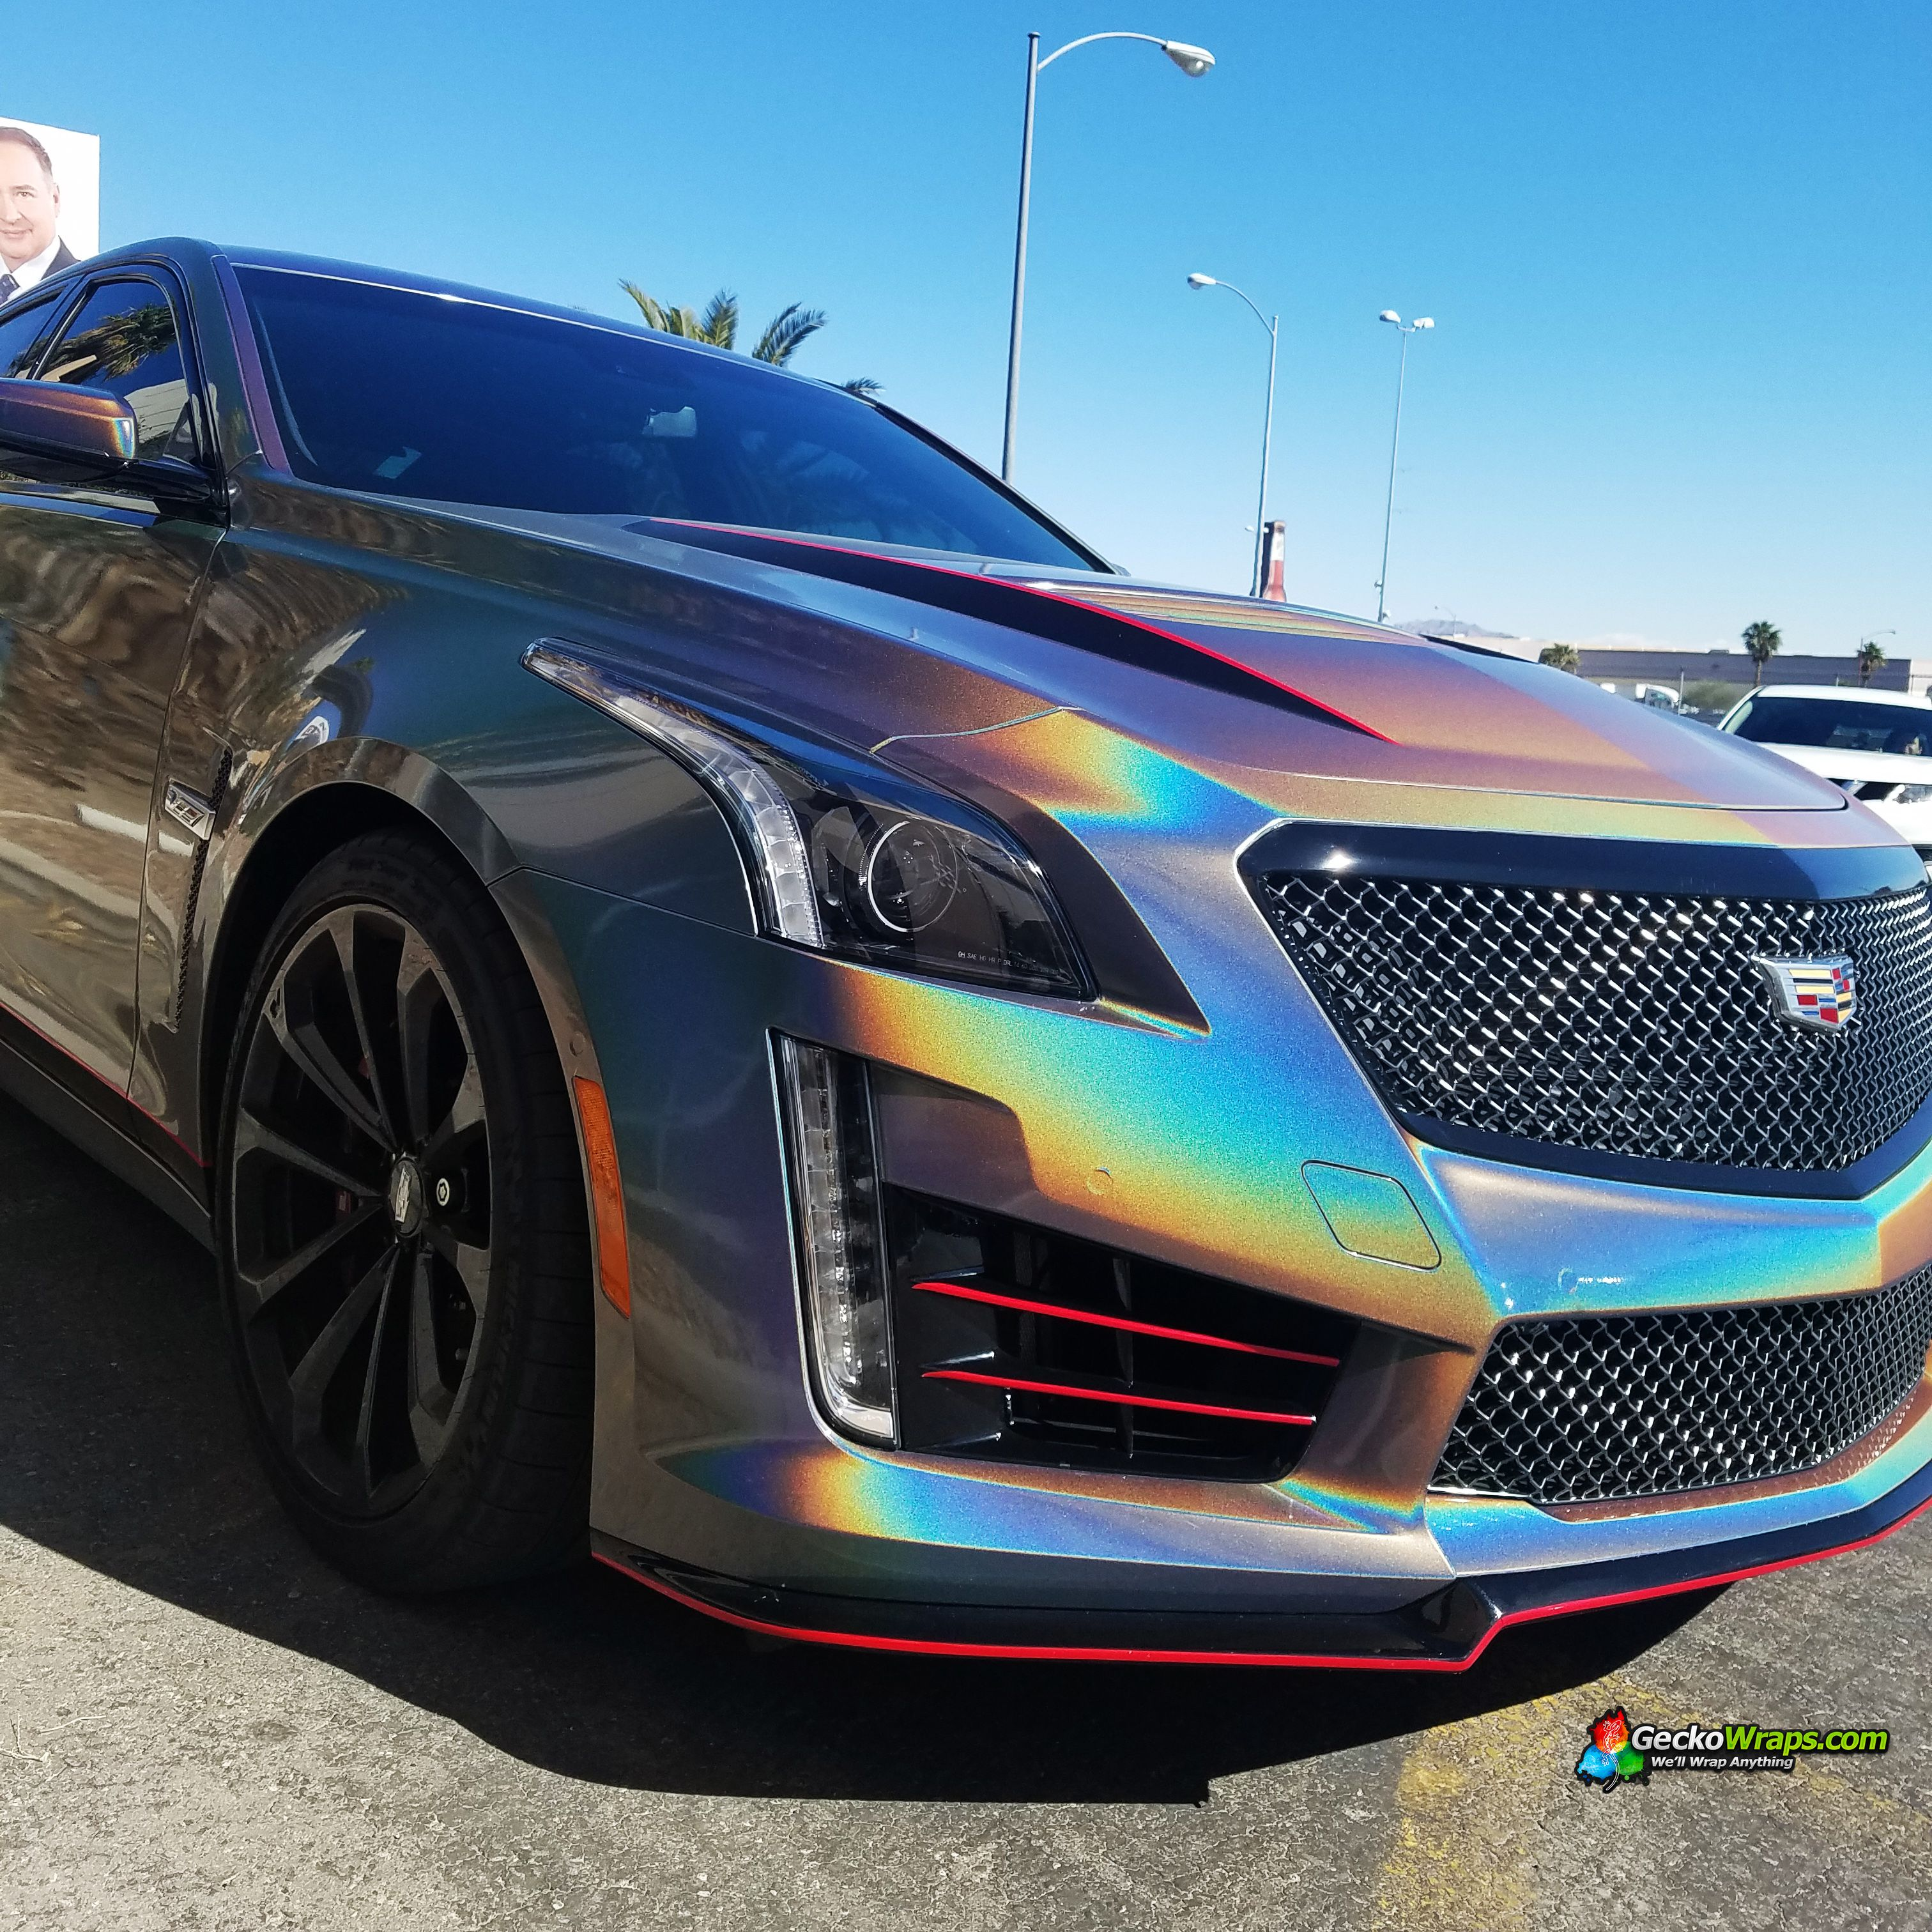 2017 Cadillac Cts V Driven: Pin On Vehicle Wraps, Car Wraps, Building Wraps And More